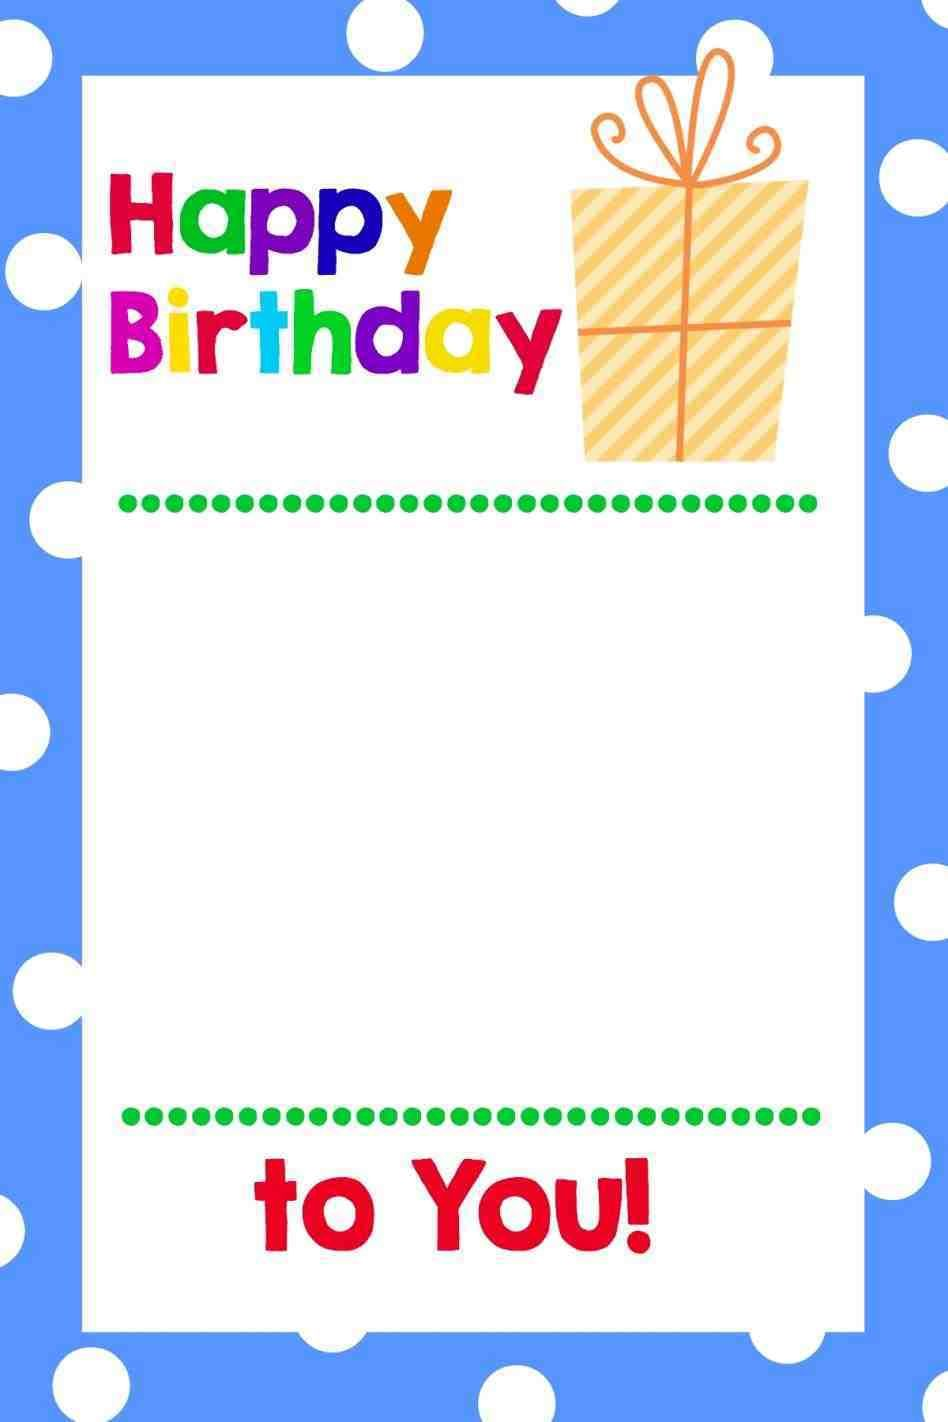 birthday card template printable birthday cards card templates printable birthday gift cards - Happy Birthday Gift Card